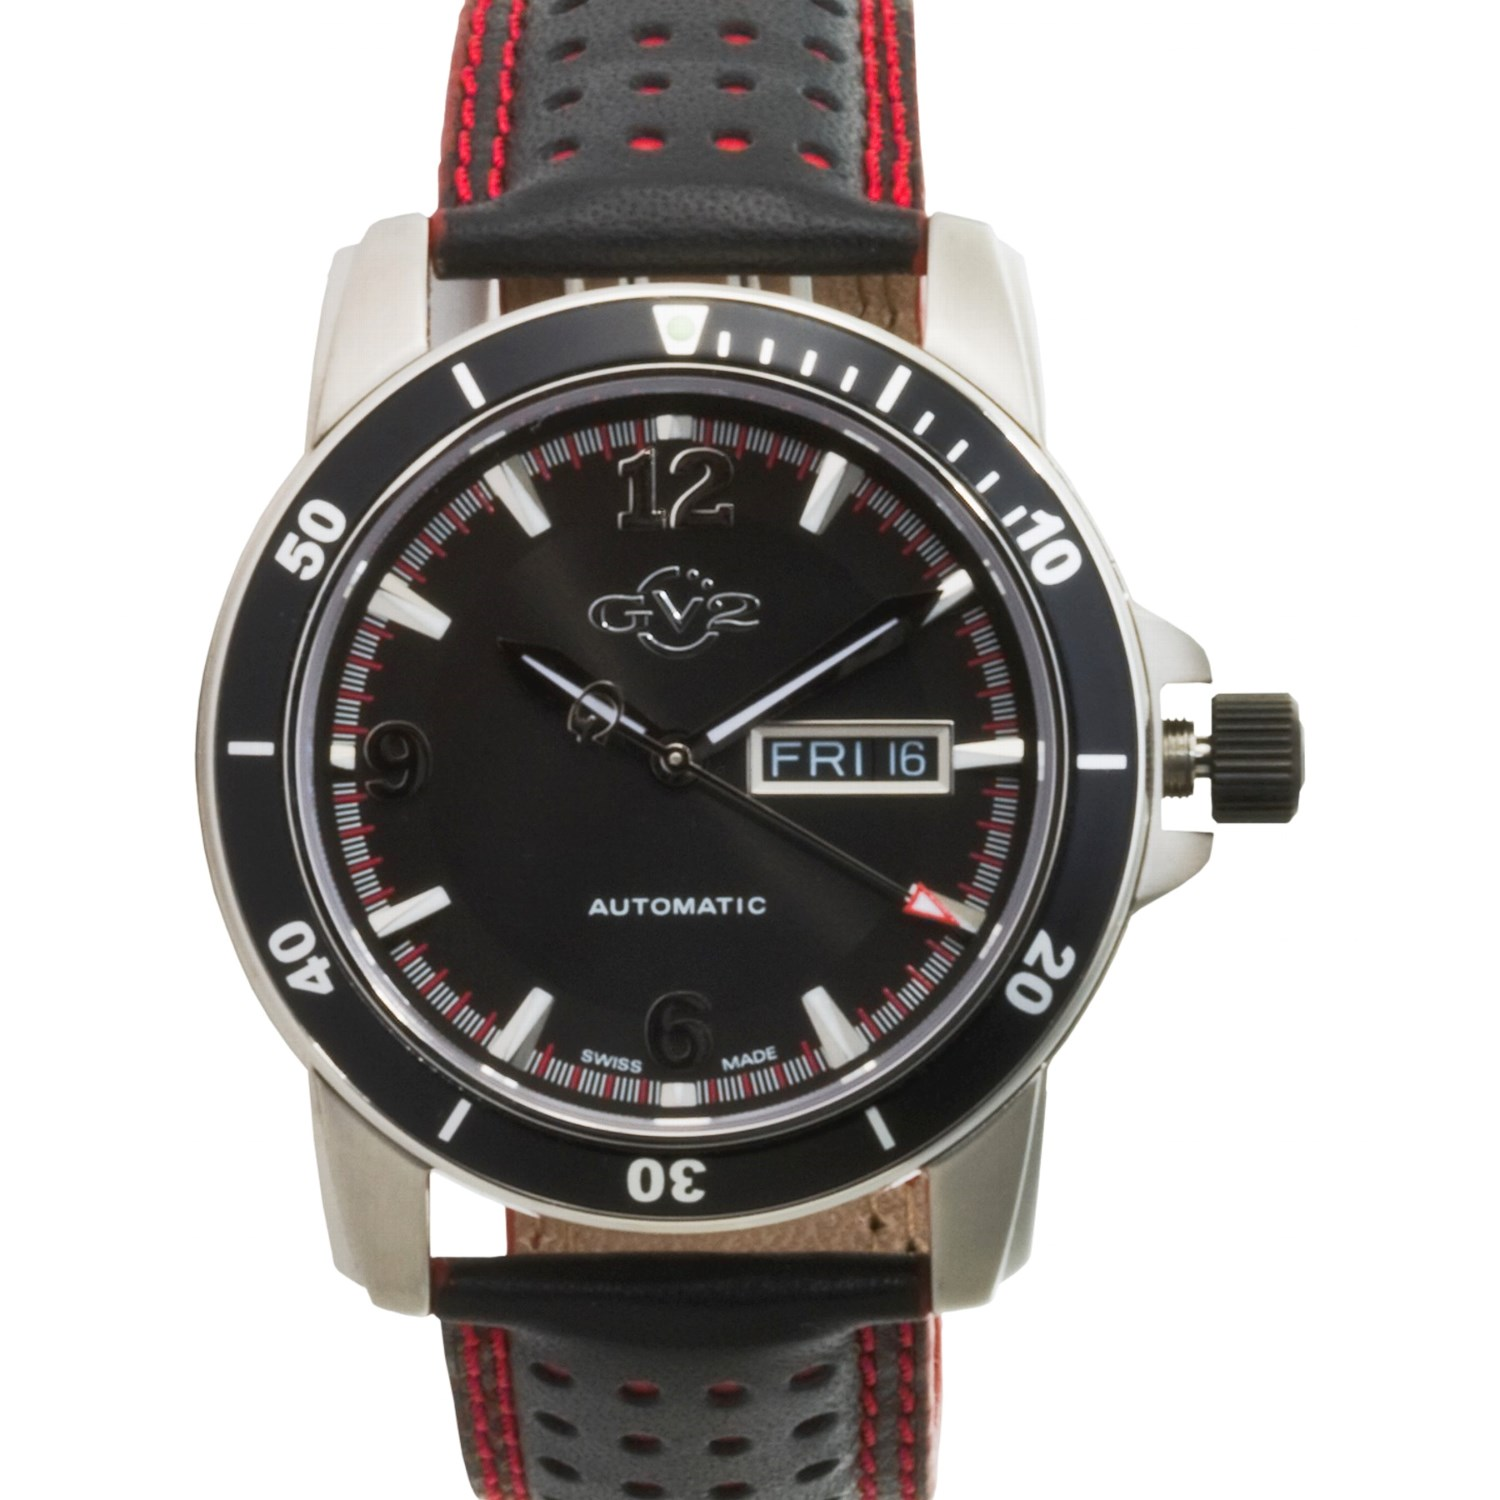 Gevril gv2 explorer automatic watch with leather band 1171e save 67 for Gevril watches